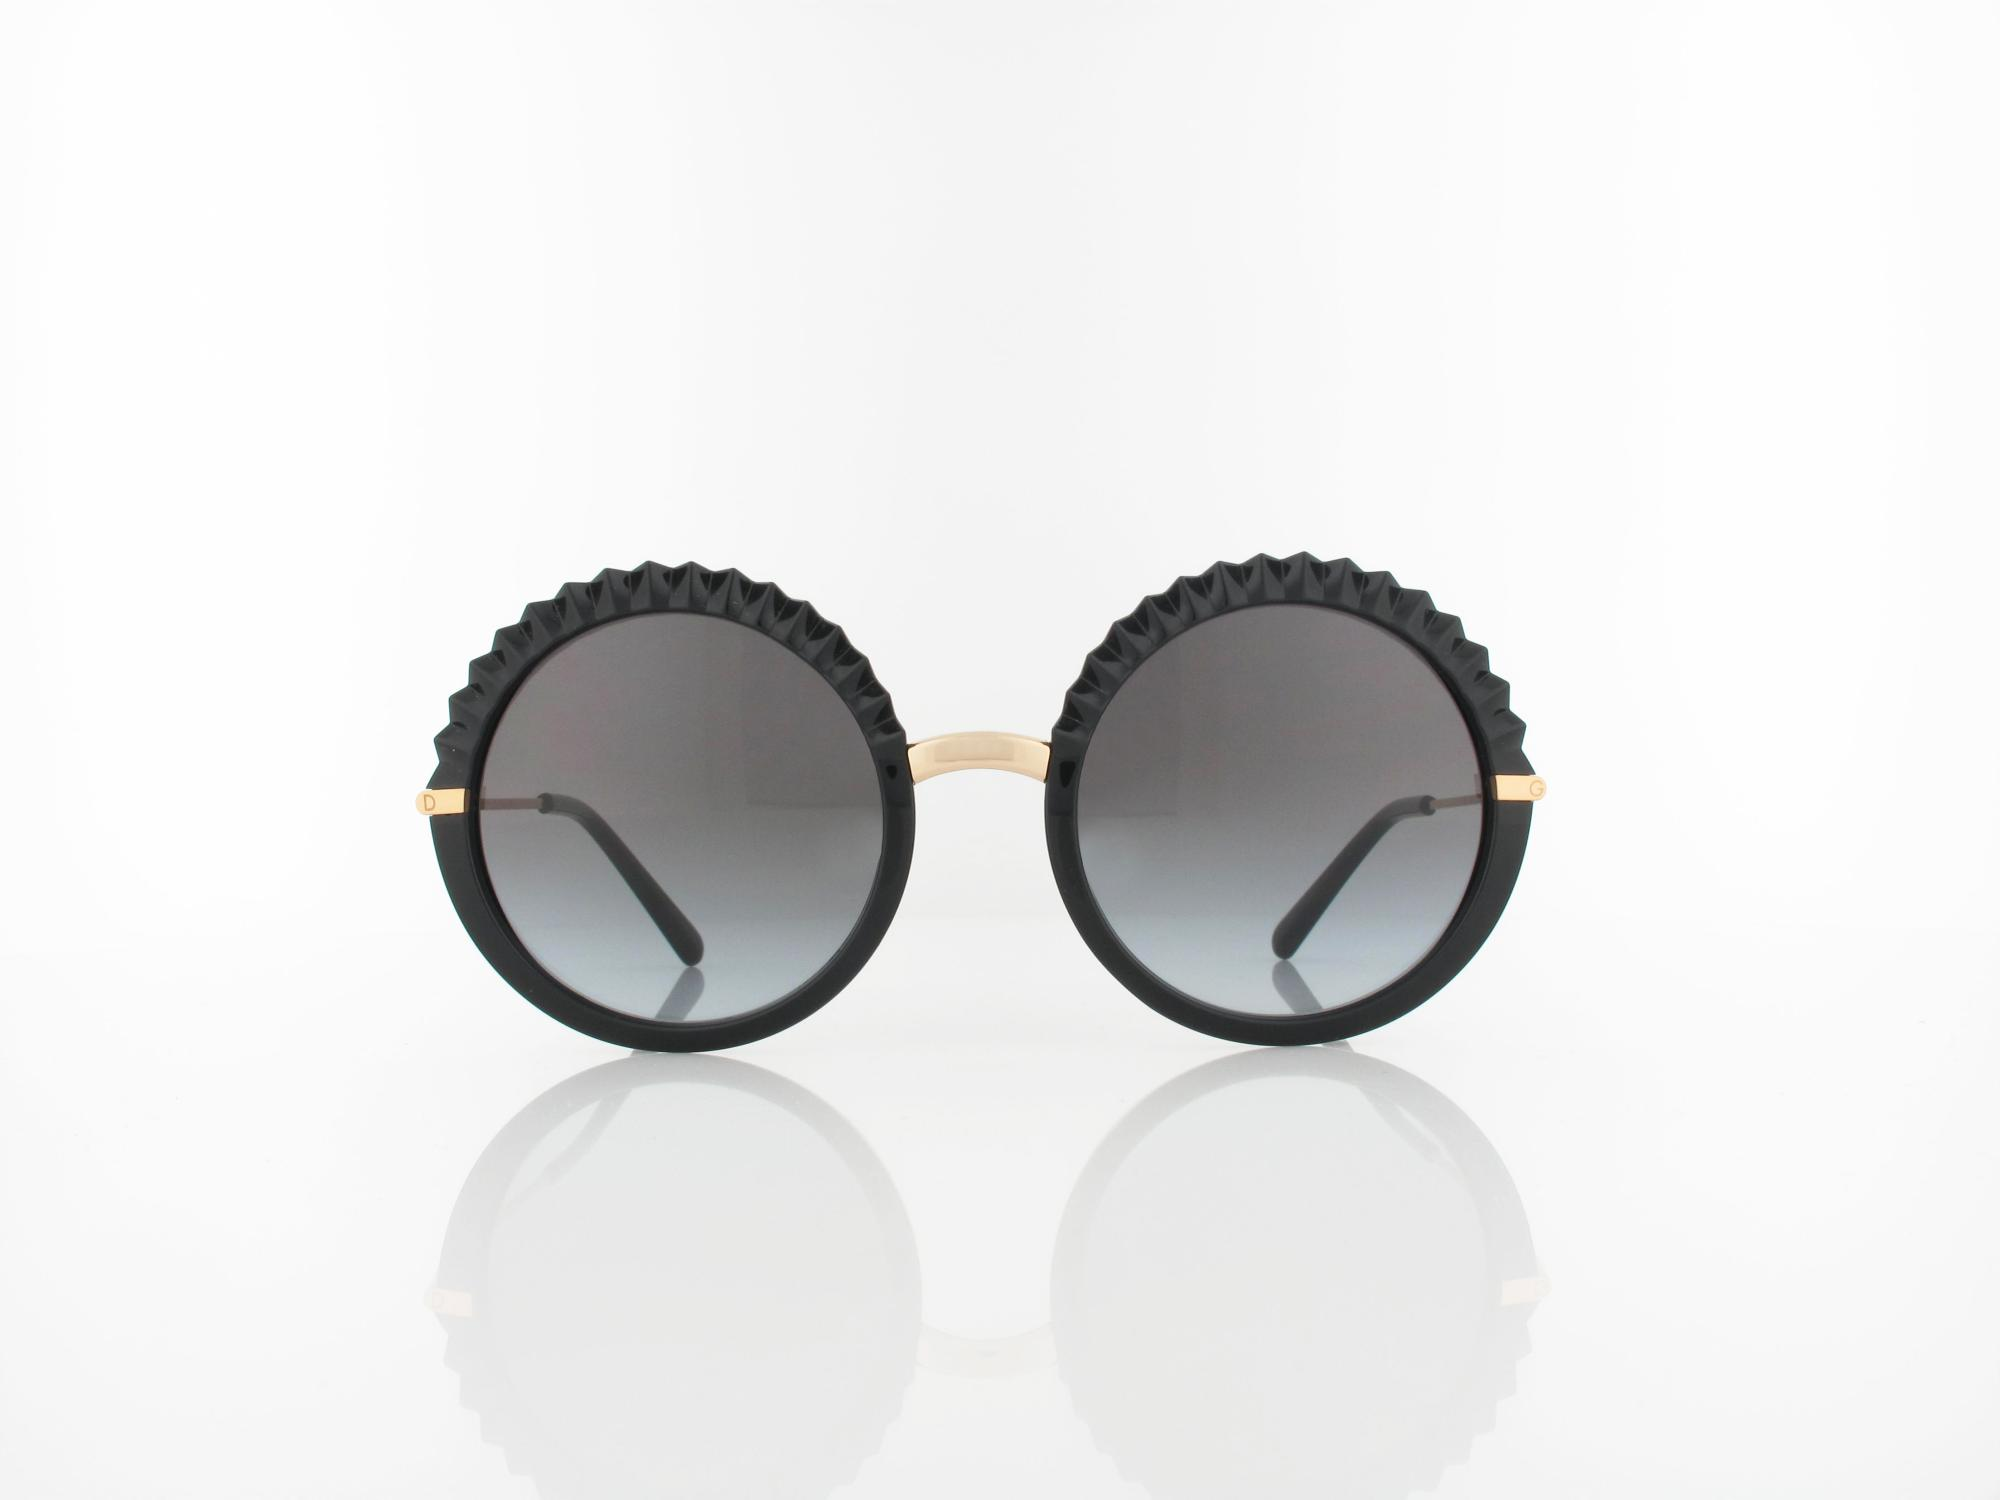 Dolce&Gabbana | DG6130 501/8G 52 | black / grey gradient